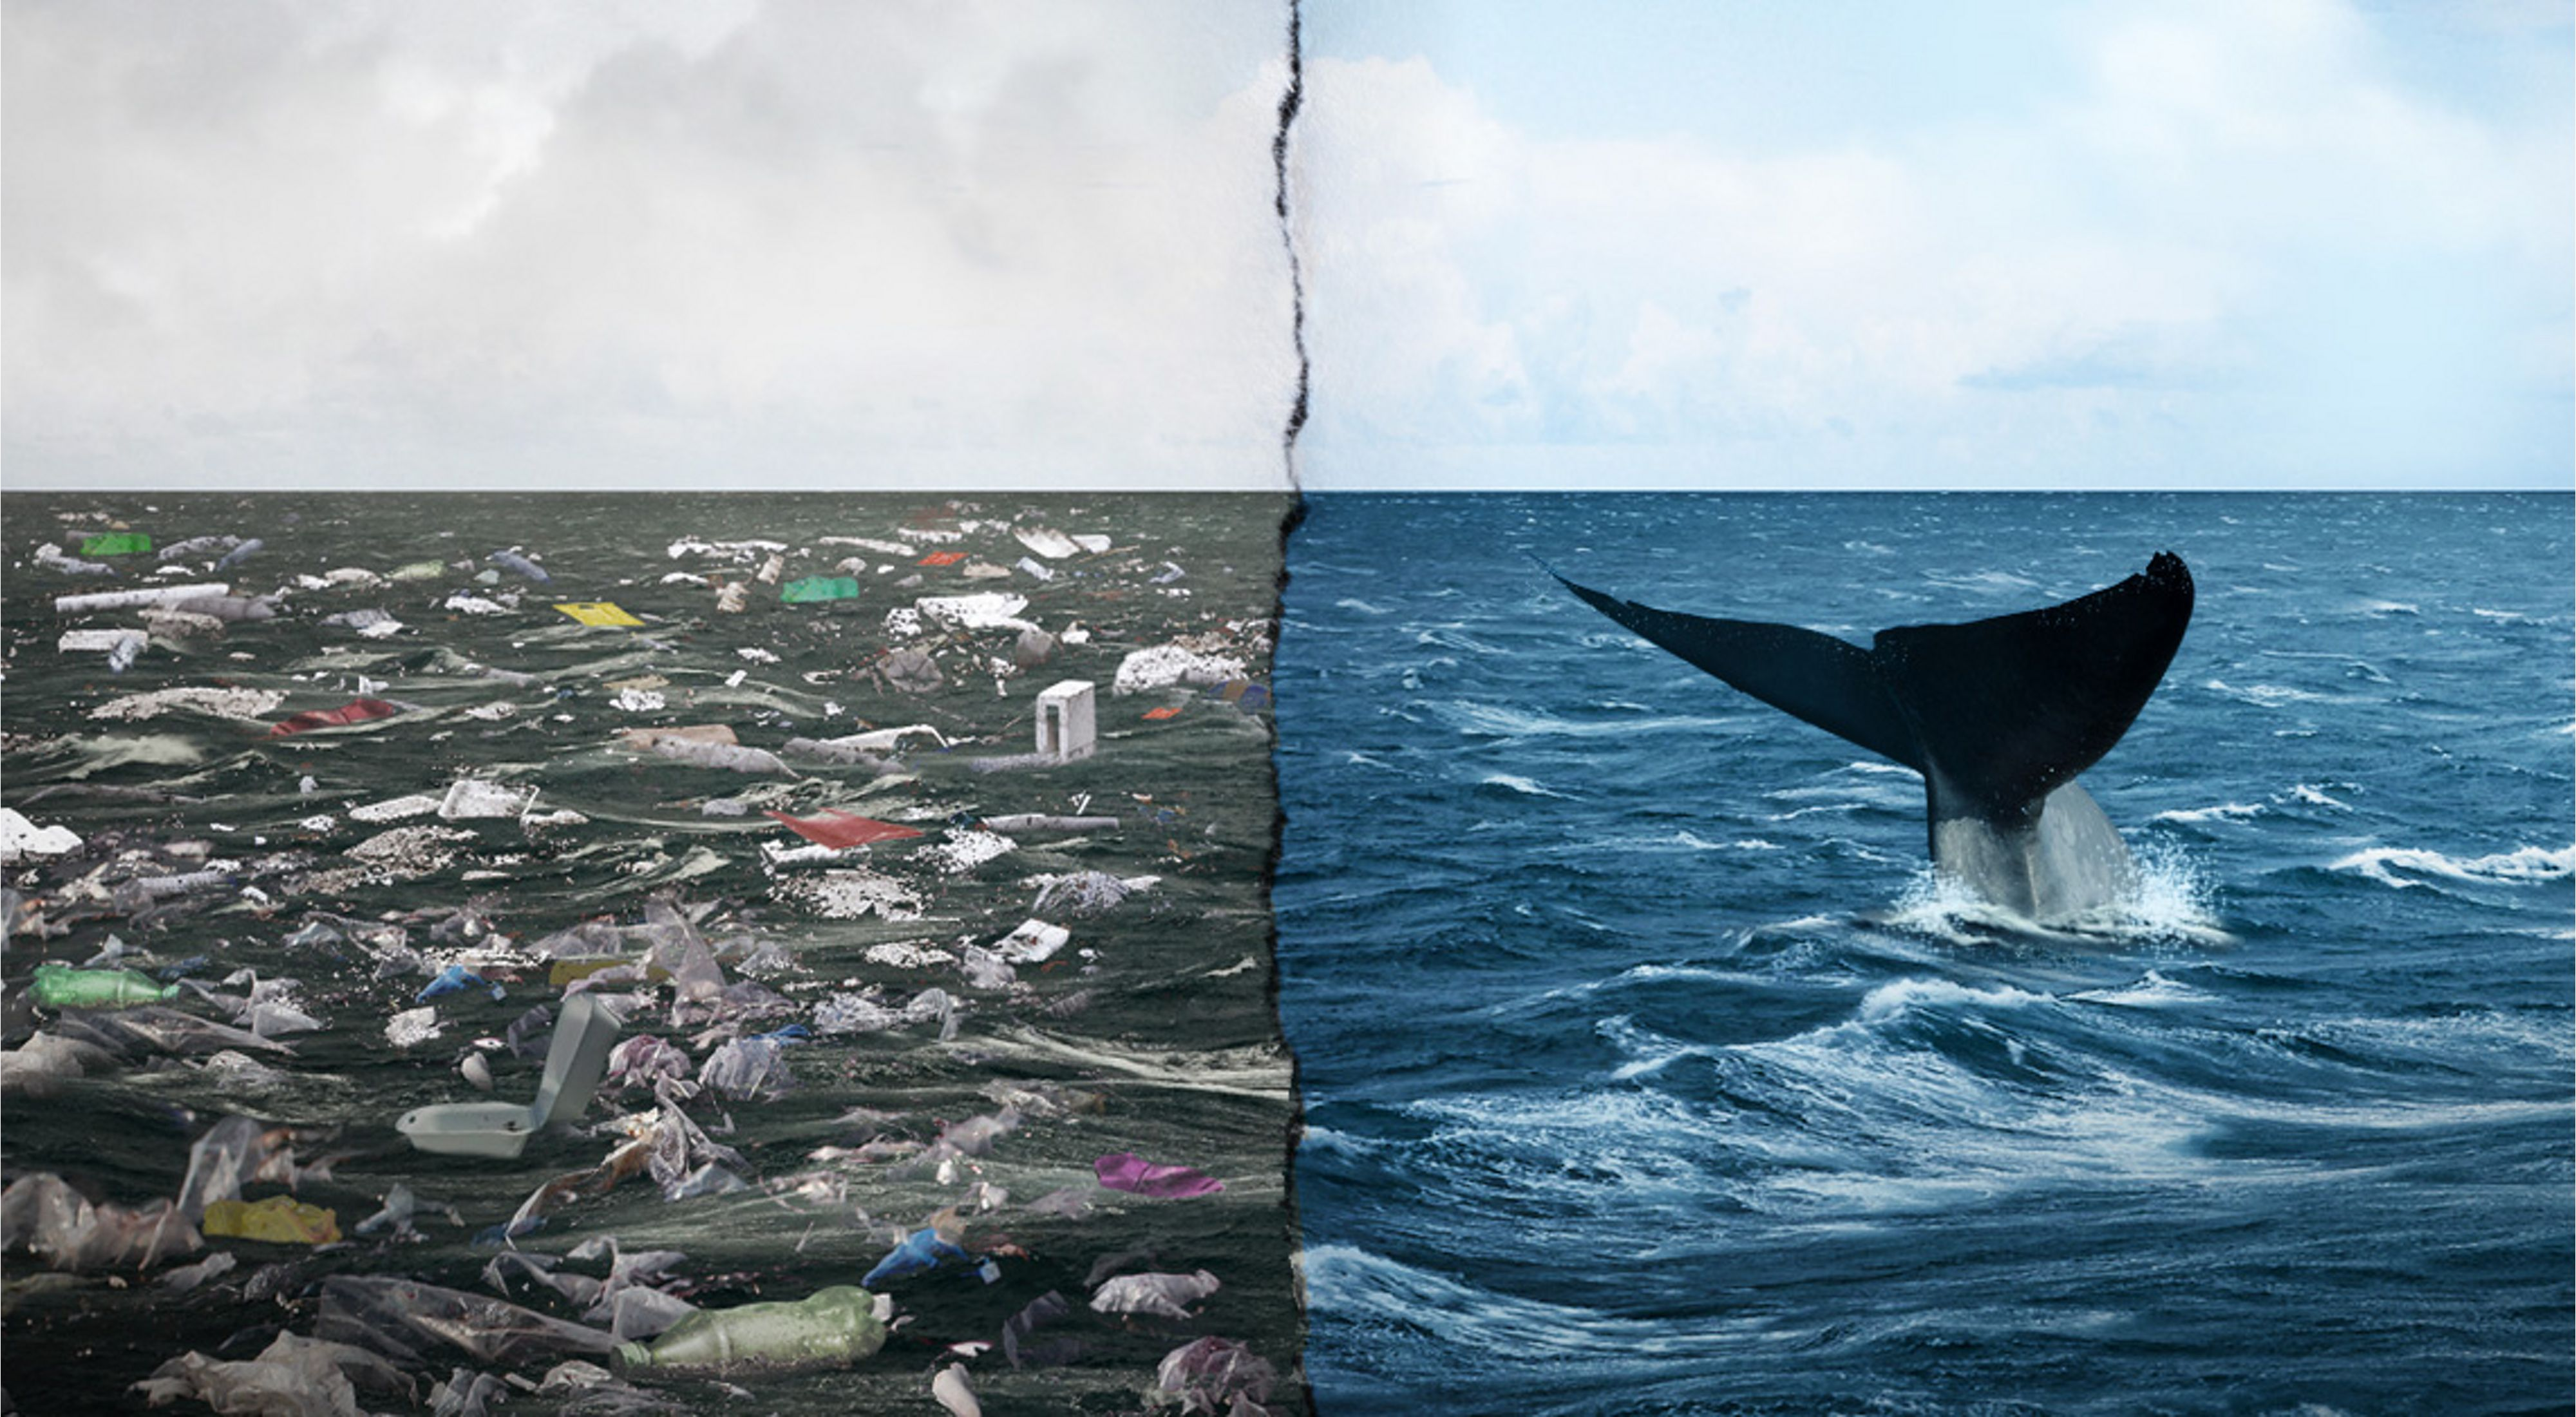 Photo collage showing a whale swimming in clear ocean waters and another side with a trash filled, dirty ocean.